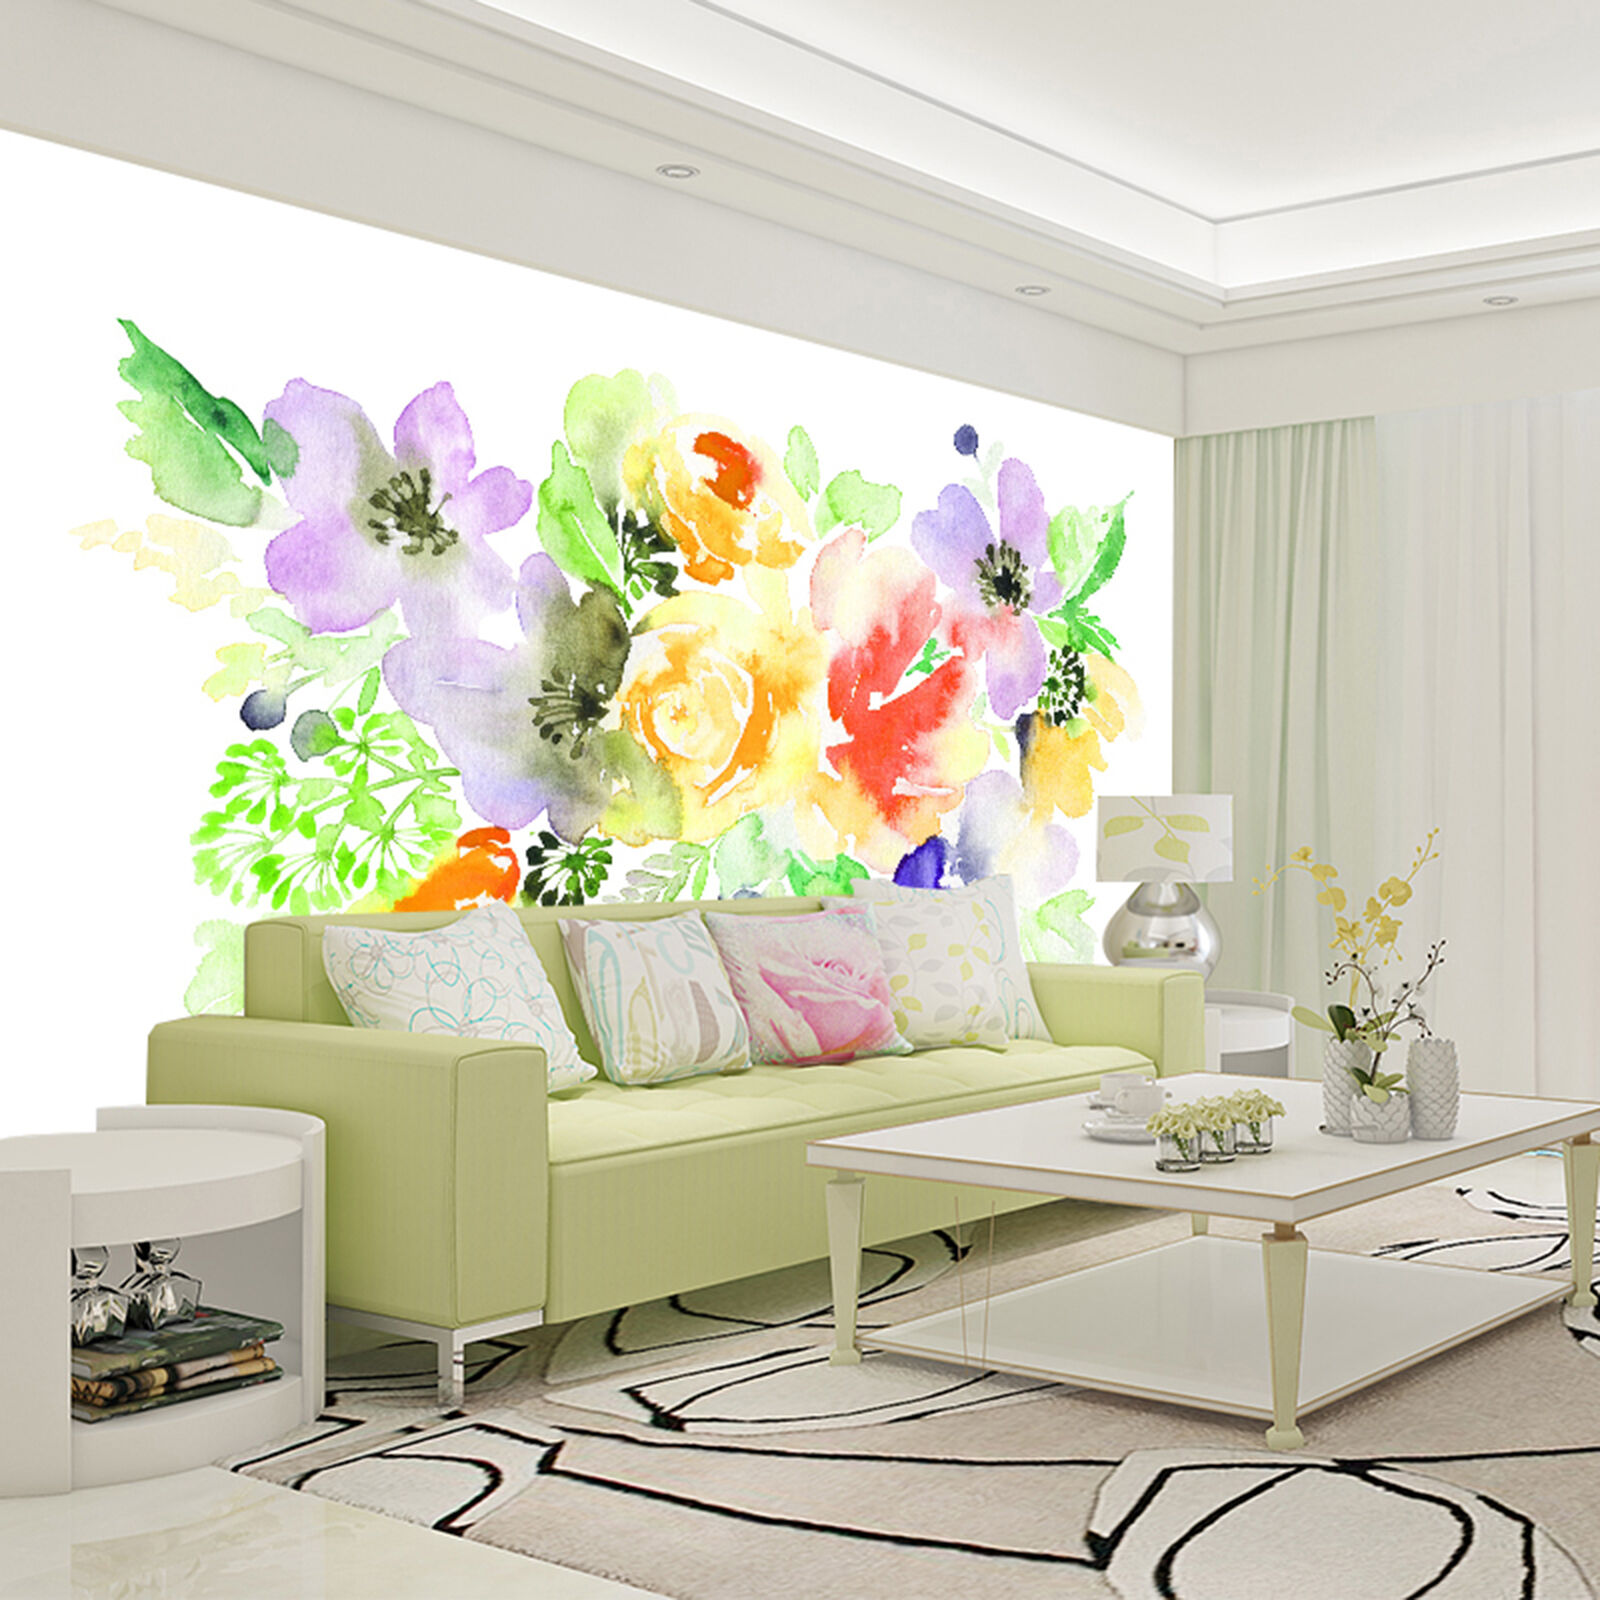 3D painted flowers Wall Paper Print Decal Wall Deco Indoor wall Mural